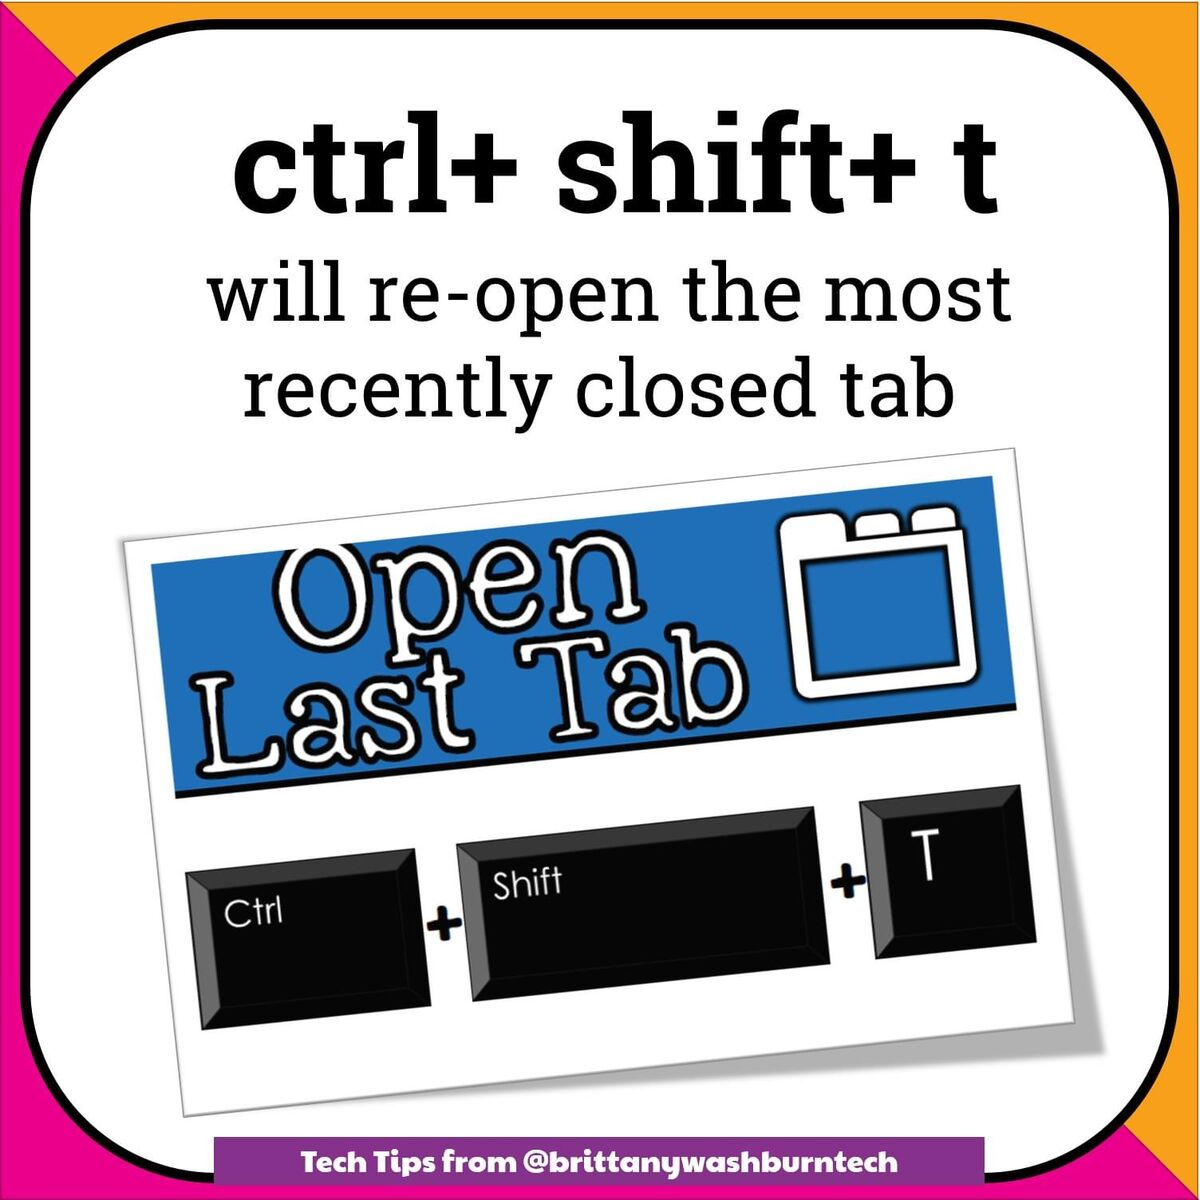 ctrl+shift+t will reopen recent tab